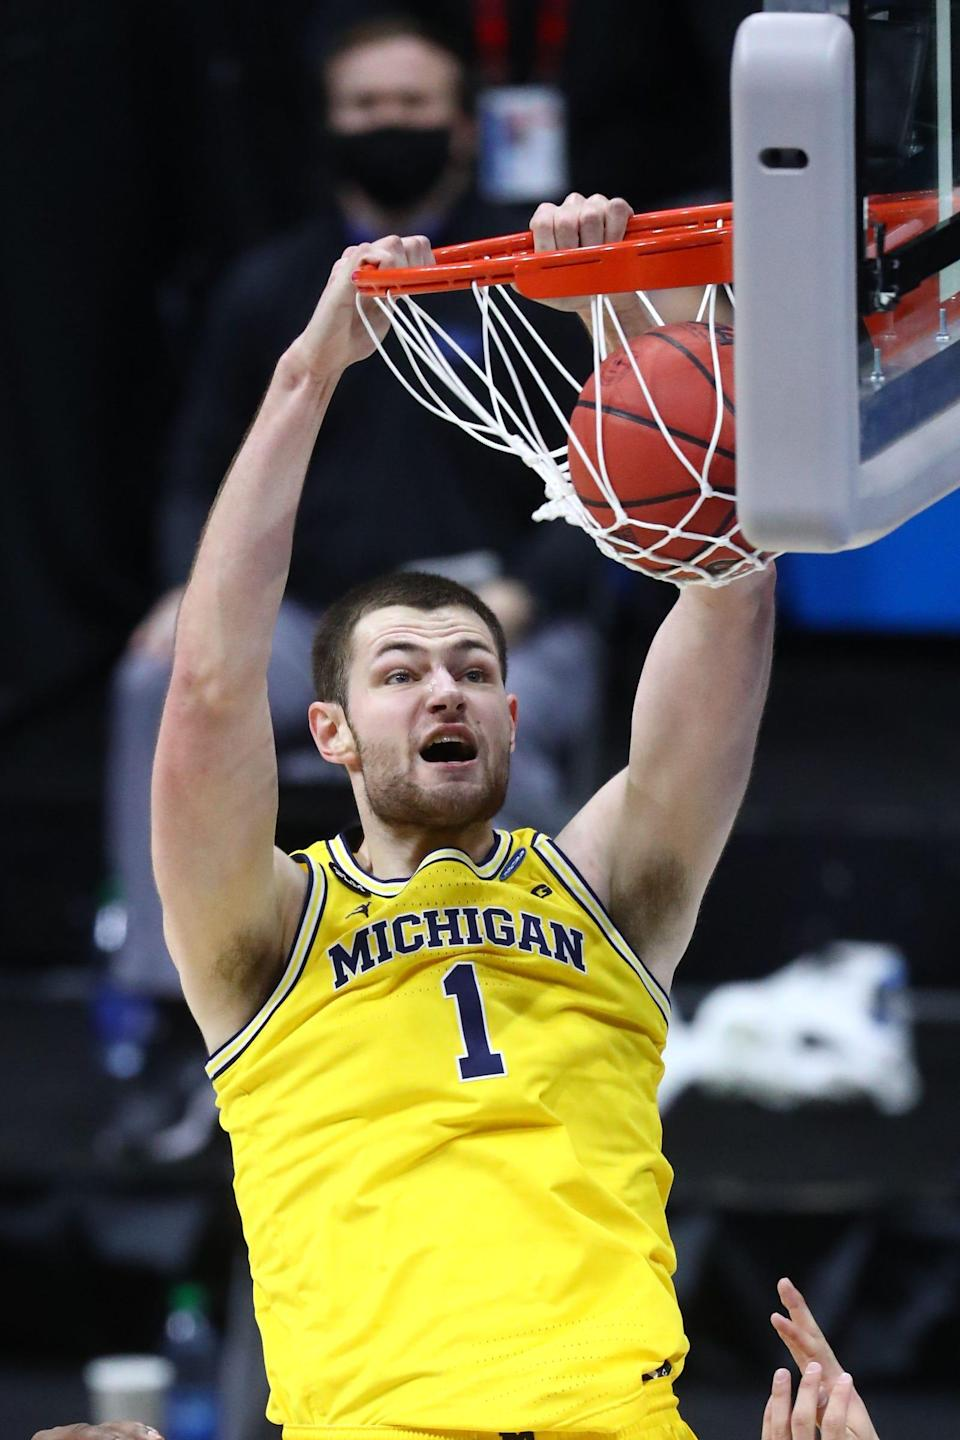 Michigan center Hunter Dickinson dunks the ball during the first half of the Elite Eight of the 2021 tournament on Tuesday, March 30, 2021, in Indianapolis.